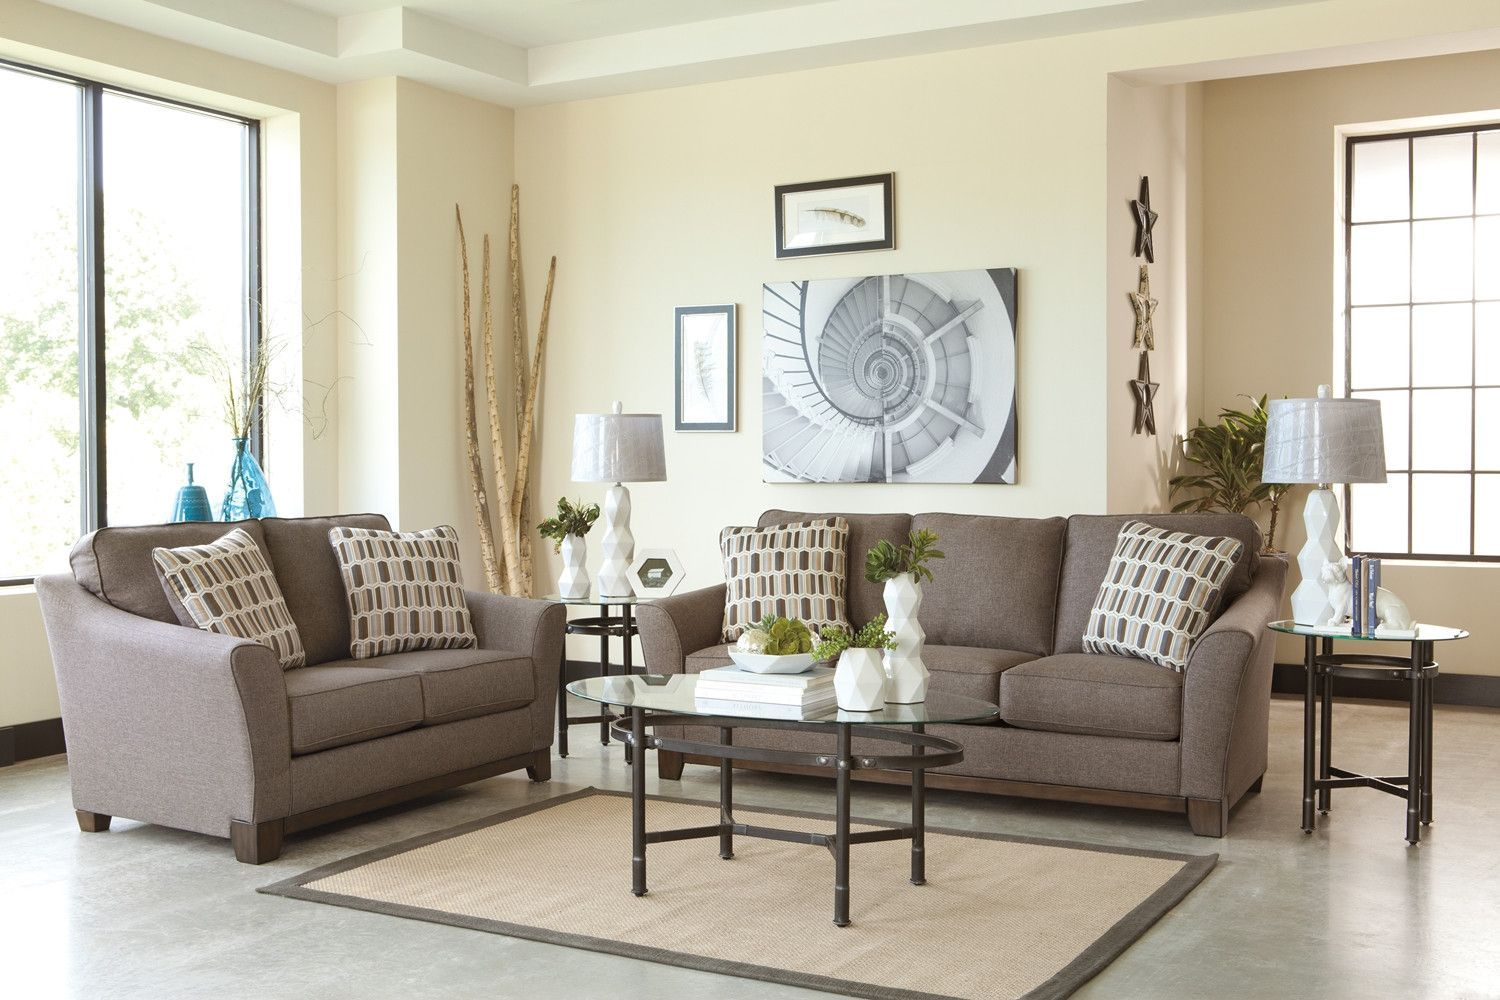 43804 - The Janley Living Room Set - Brown | Living room sets, Room ...